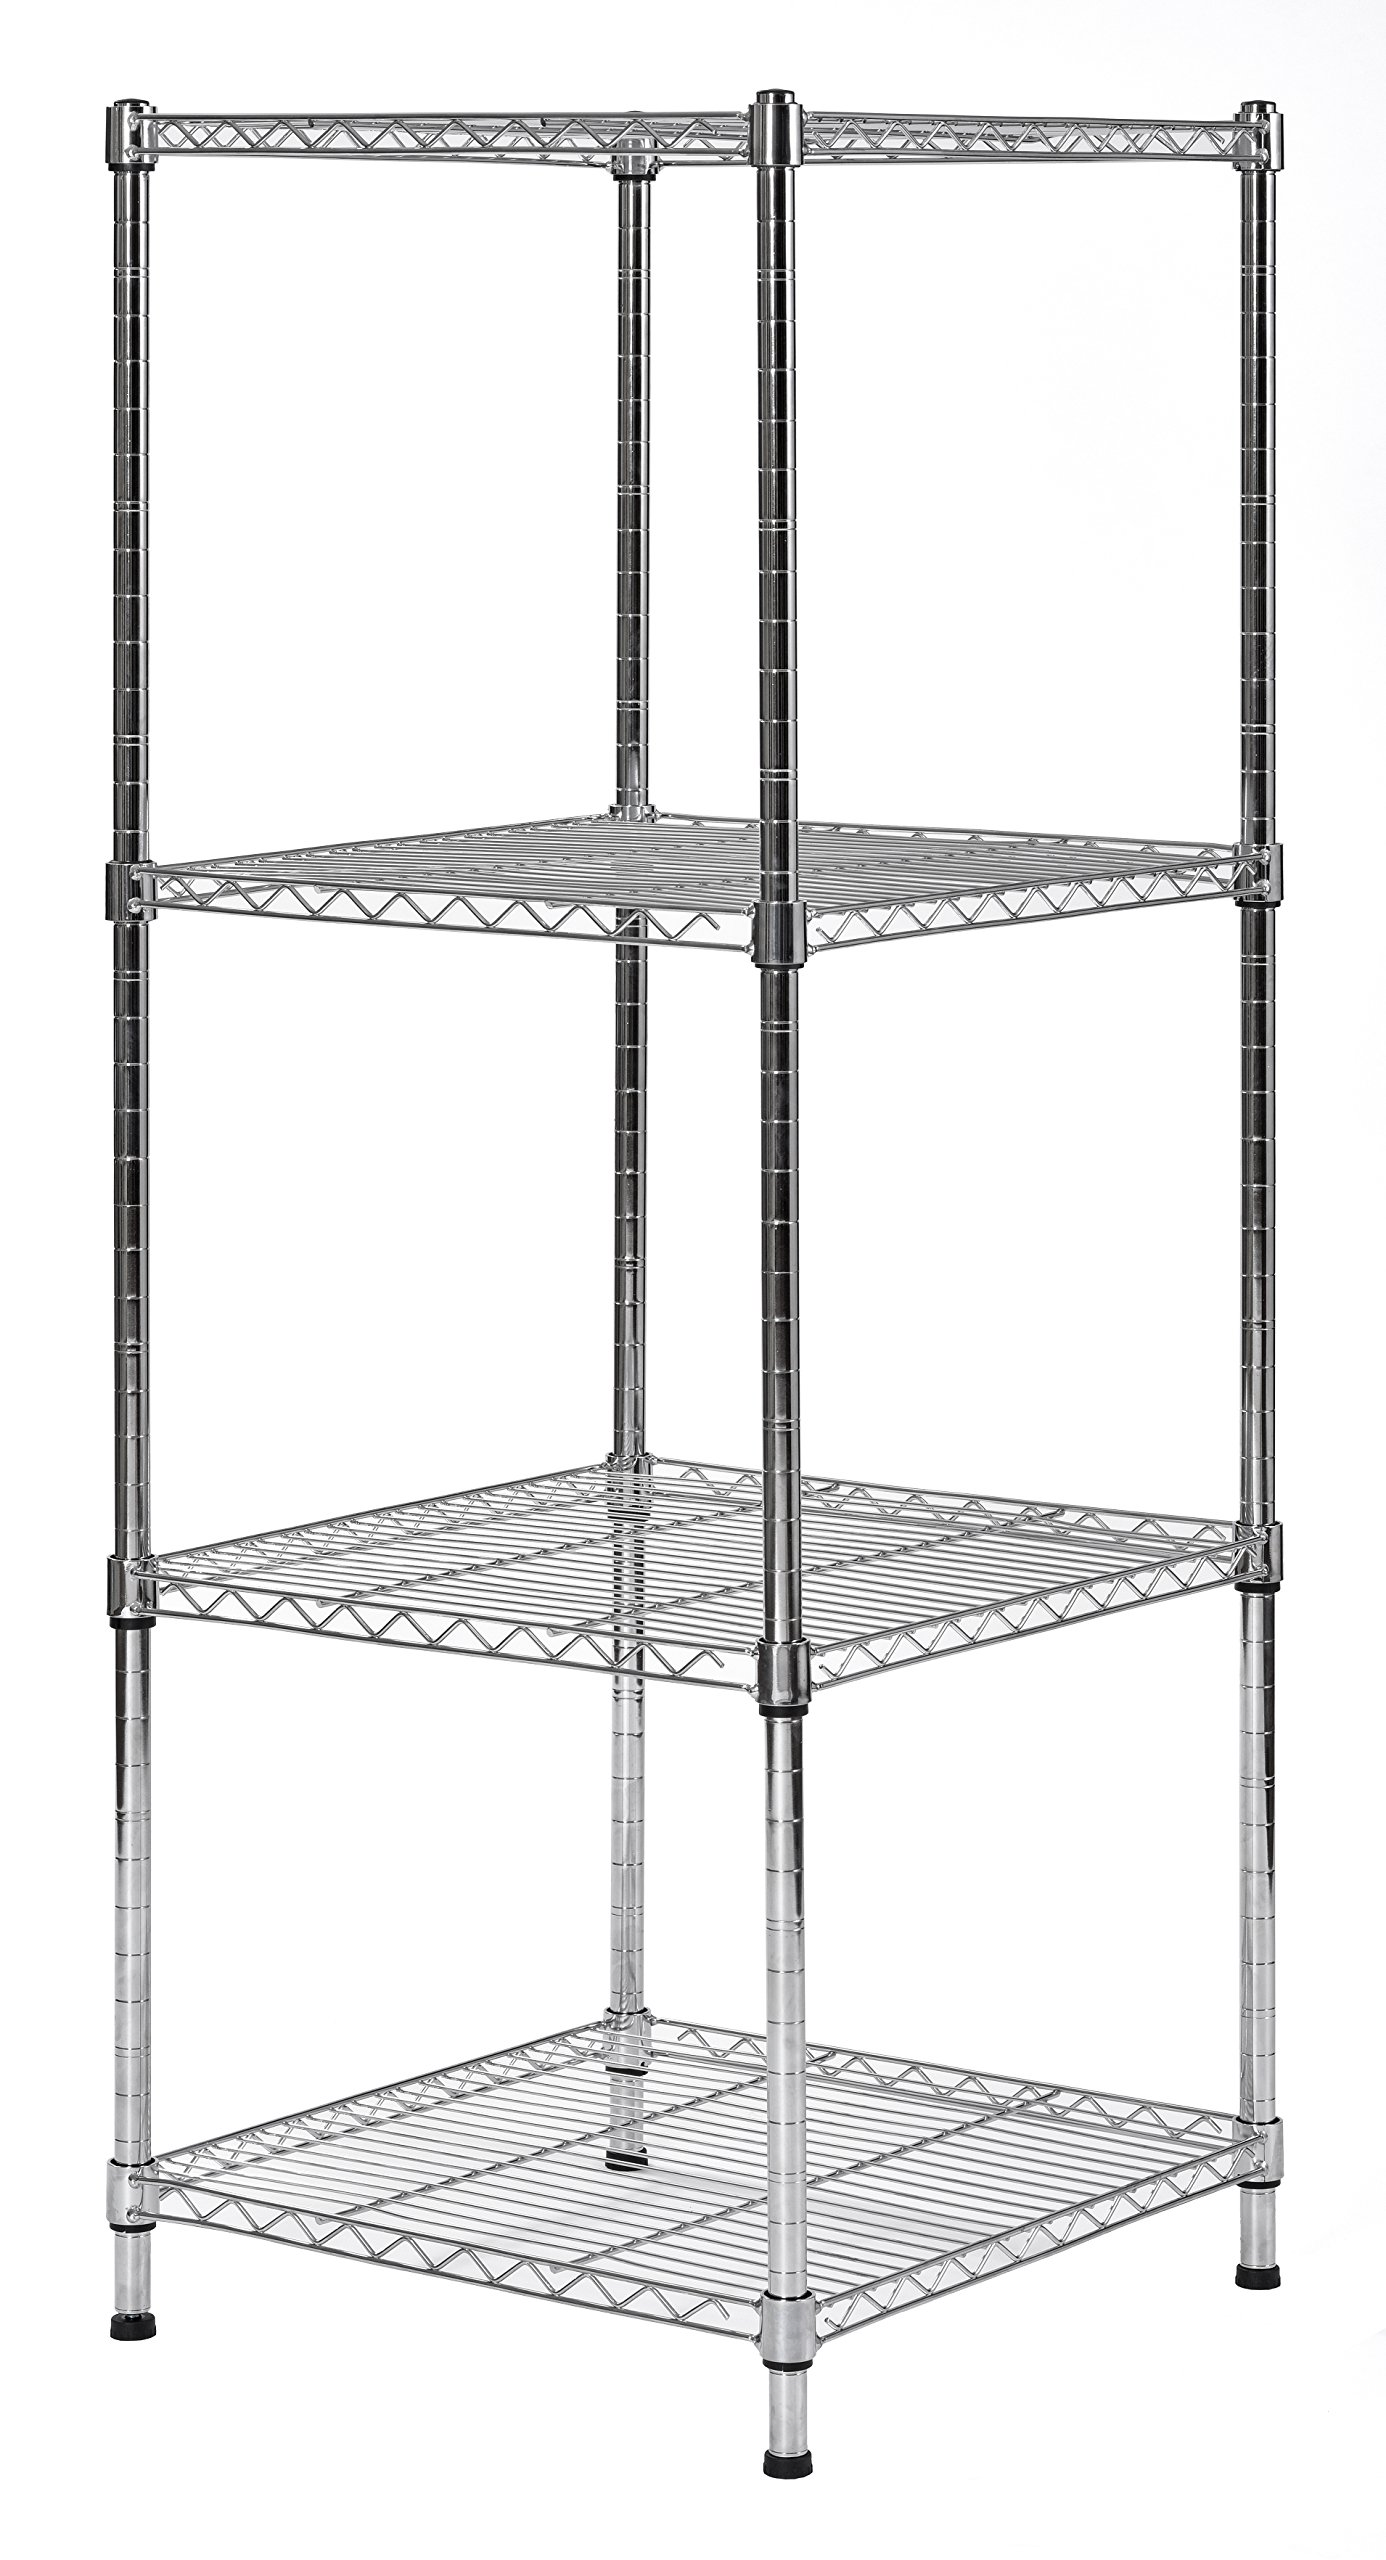 Muscle Rack SWS181847-4C Wire Shelf Slim Spacesaver 18''W x 18''D x 47''H, 4 Shelves, 47'' Height, 18'' Width, 18'' Length by Muscle Rack